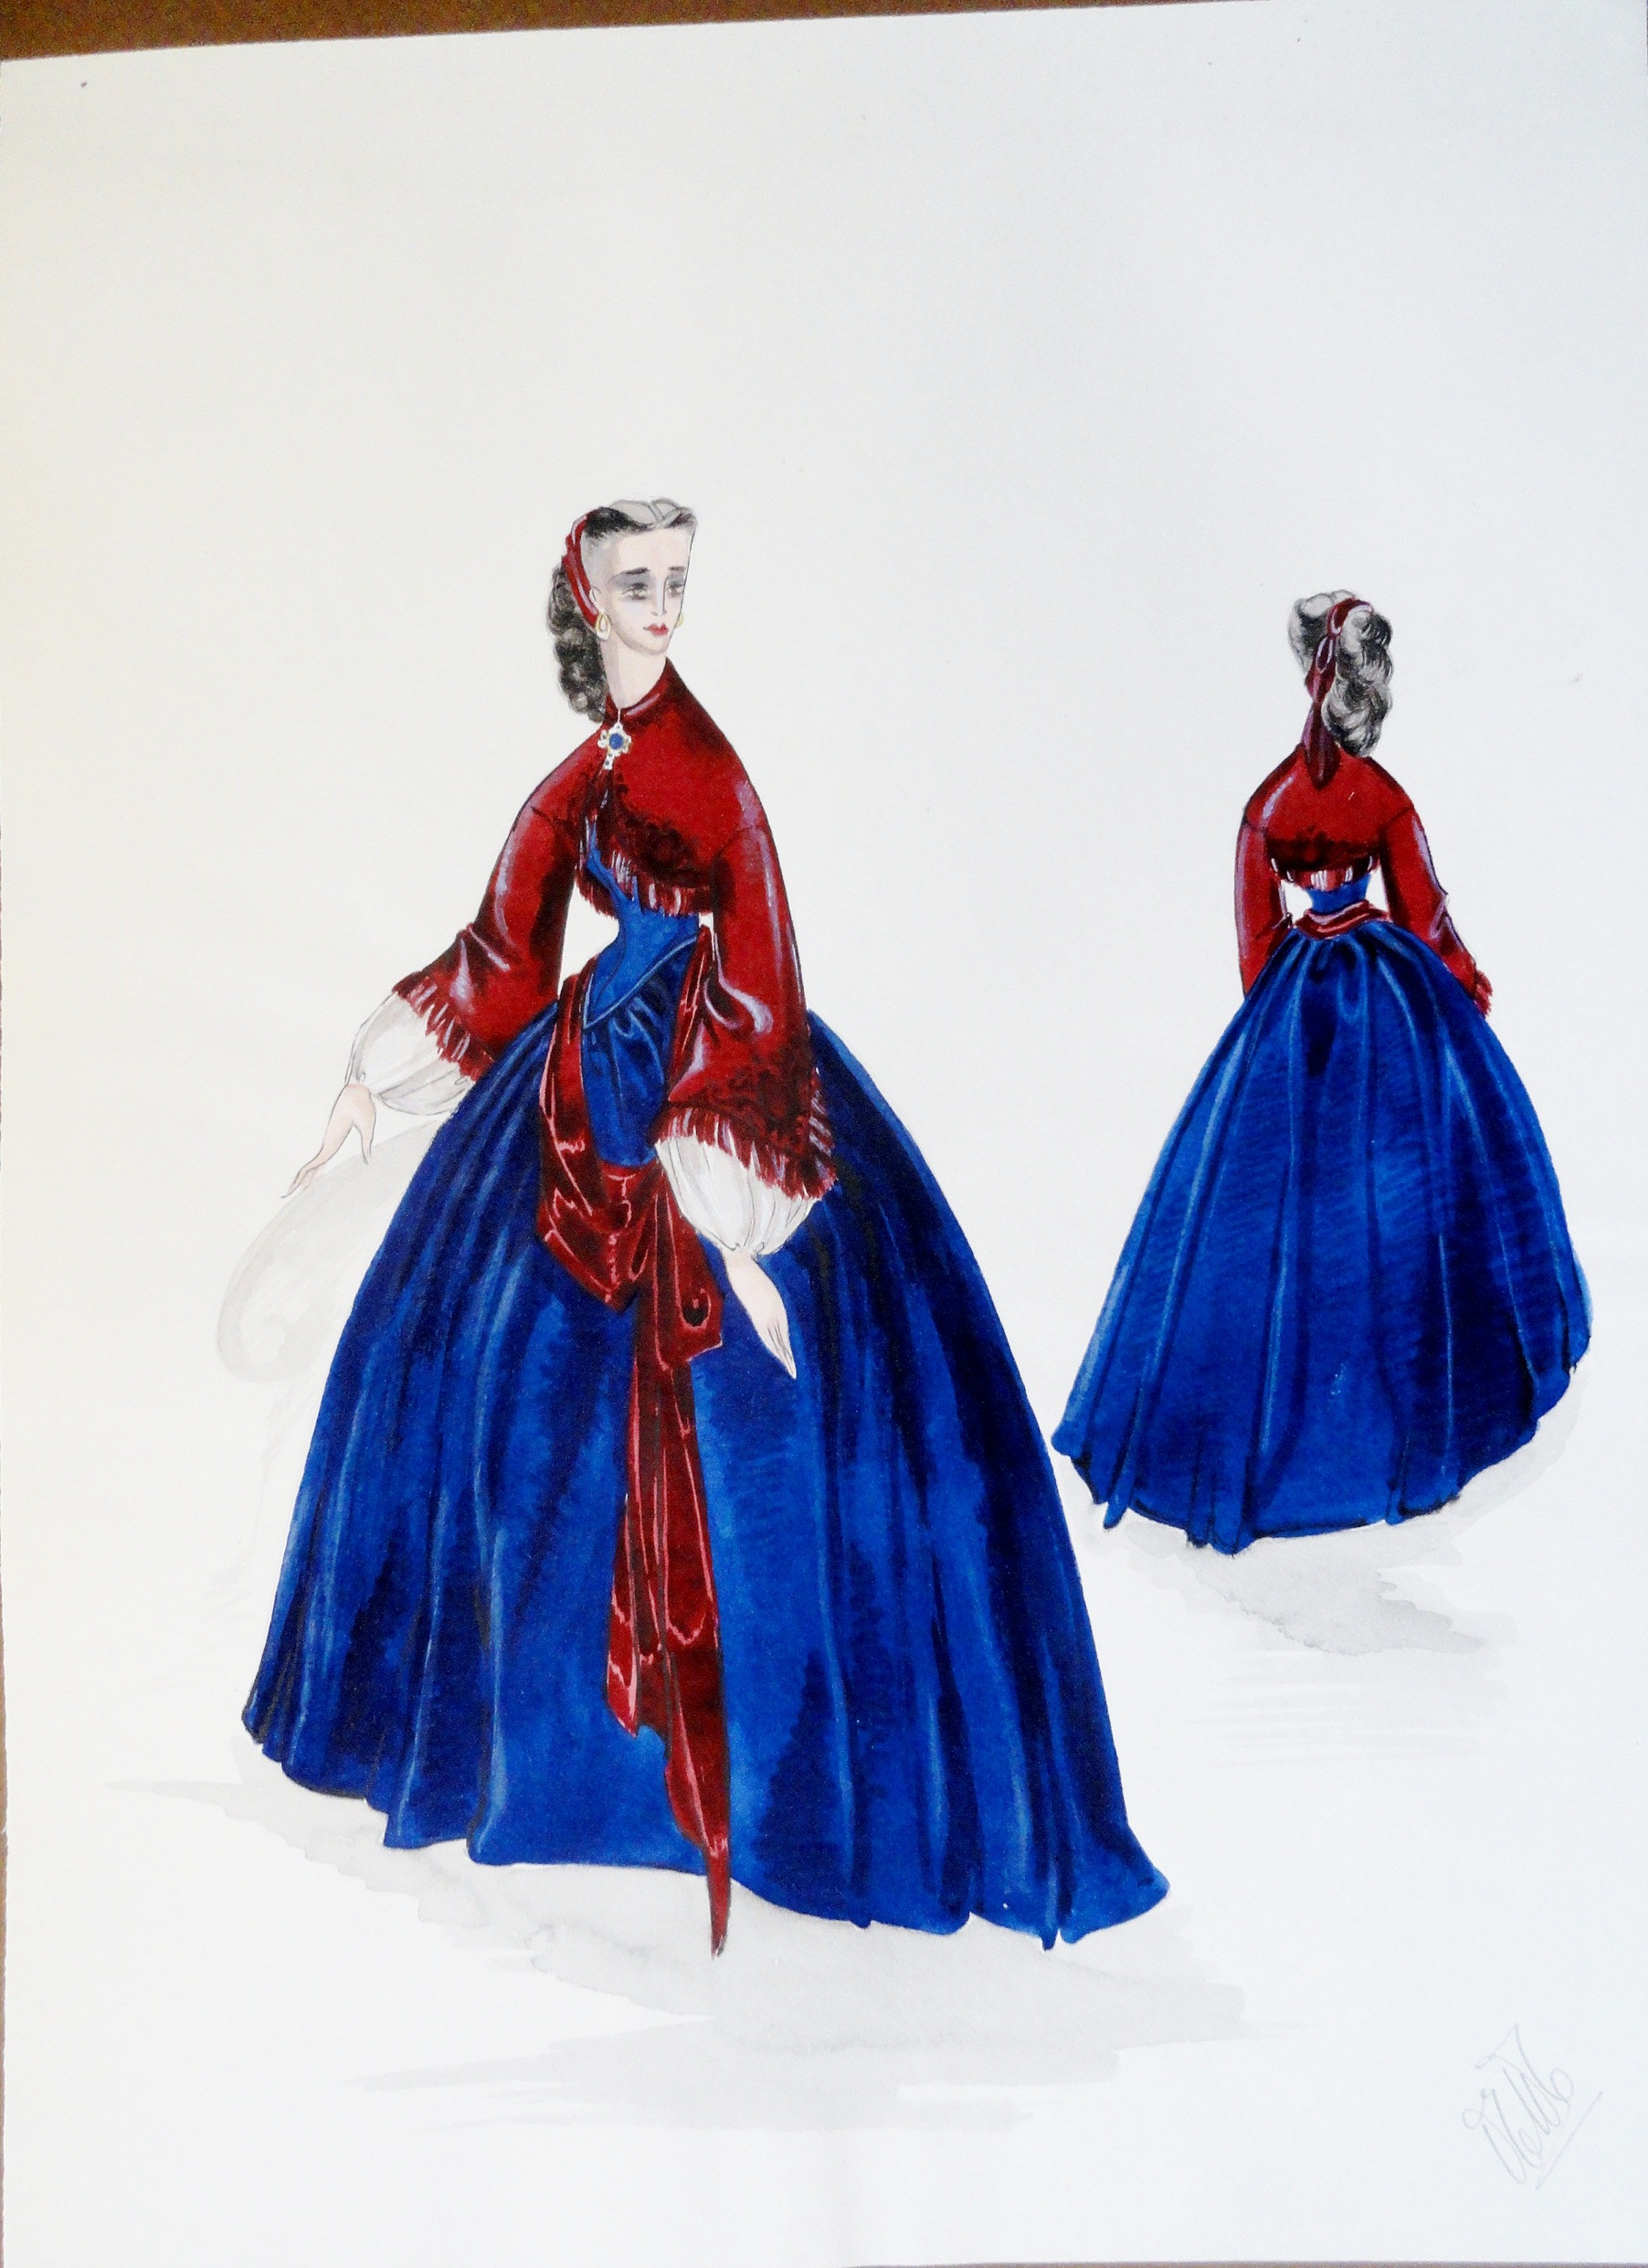 Rachel Felix in blue dress, burgundy top, and sash. Pen and Ink and gouache. From the Rachel Portfolio by Owen Hyde Clark. $300.00.